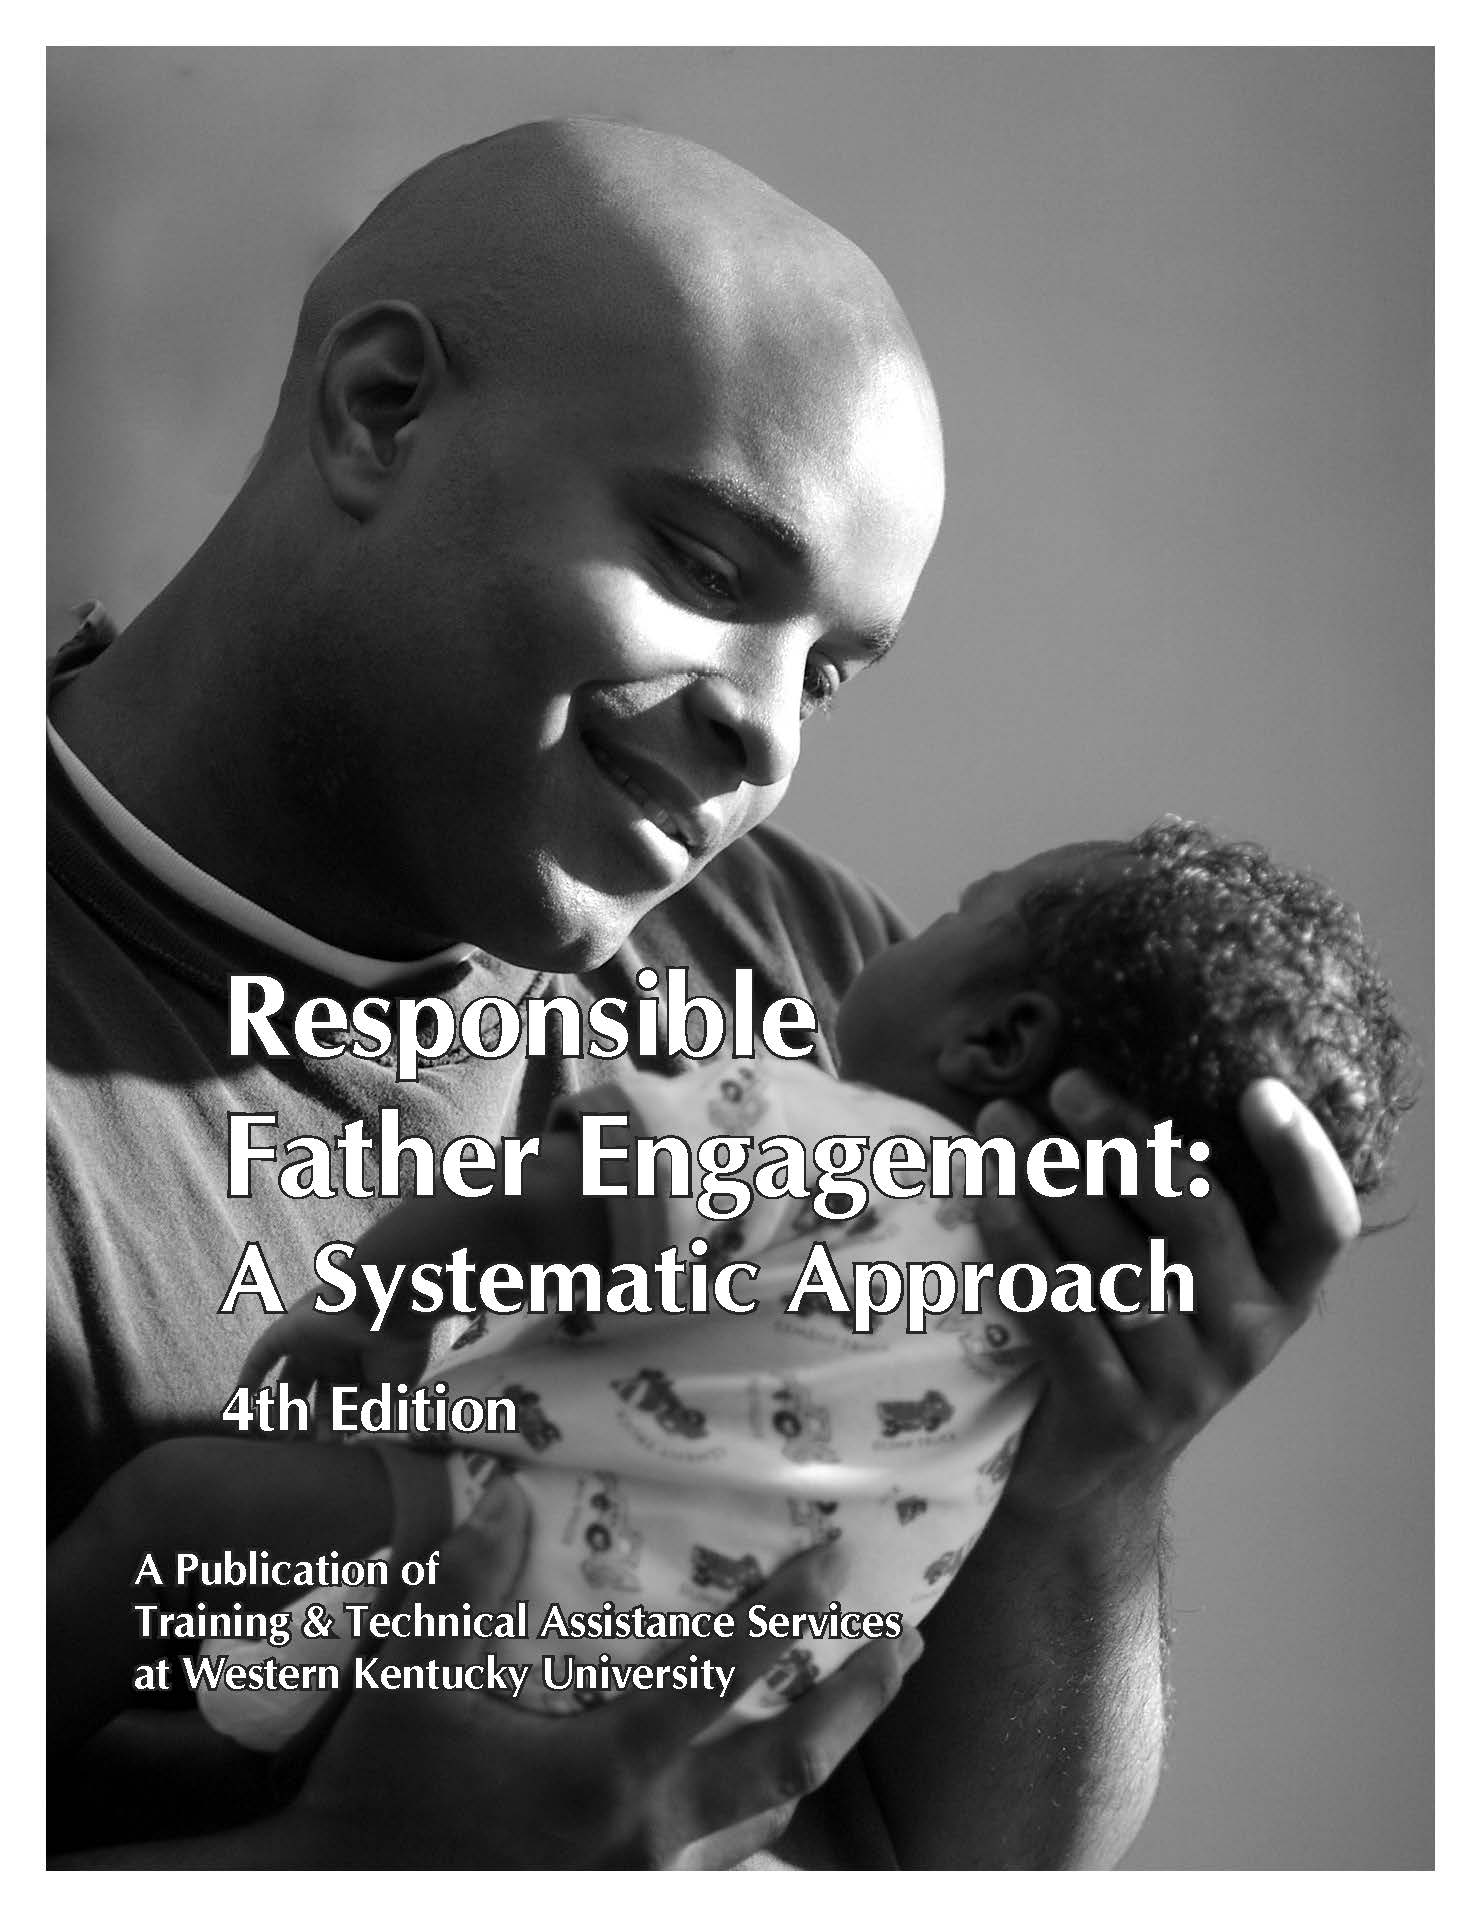 Responsible Father Engagement book cover